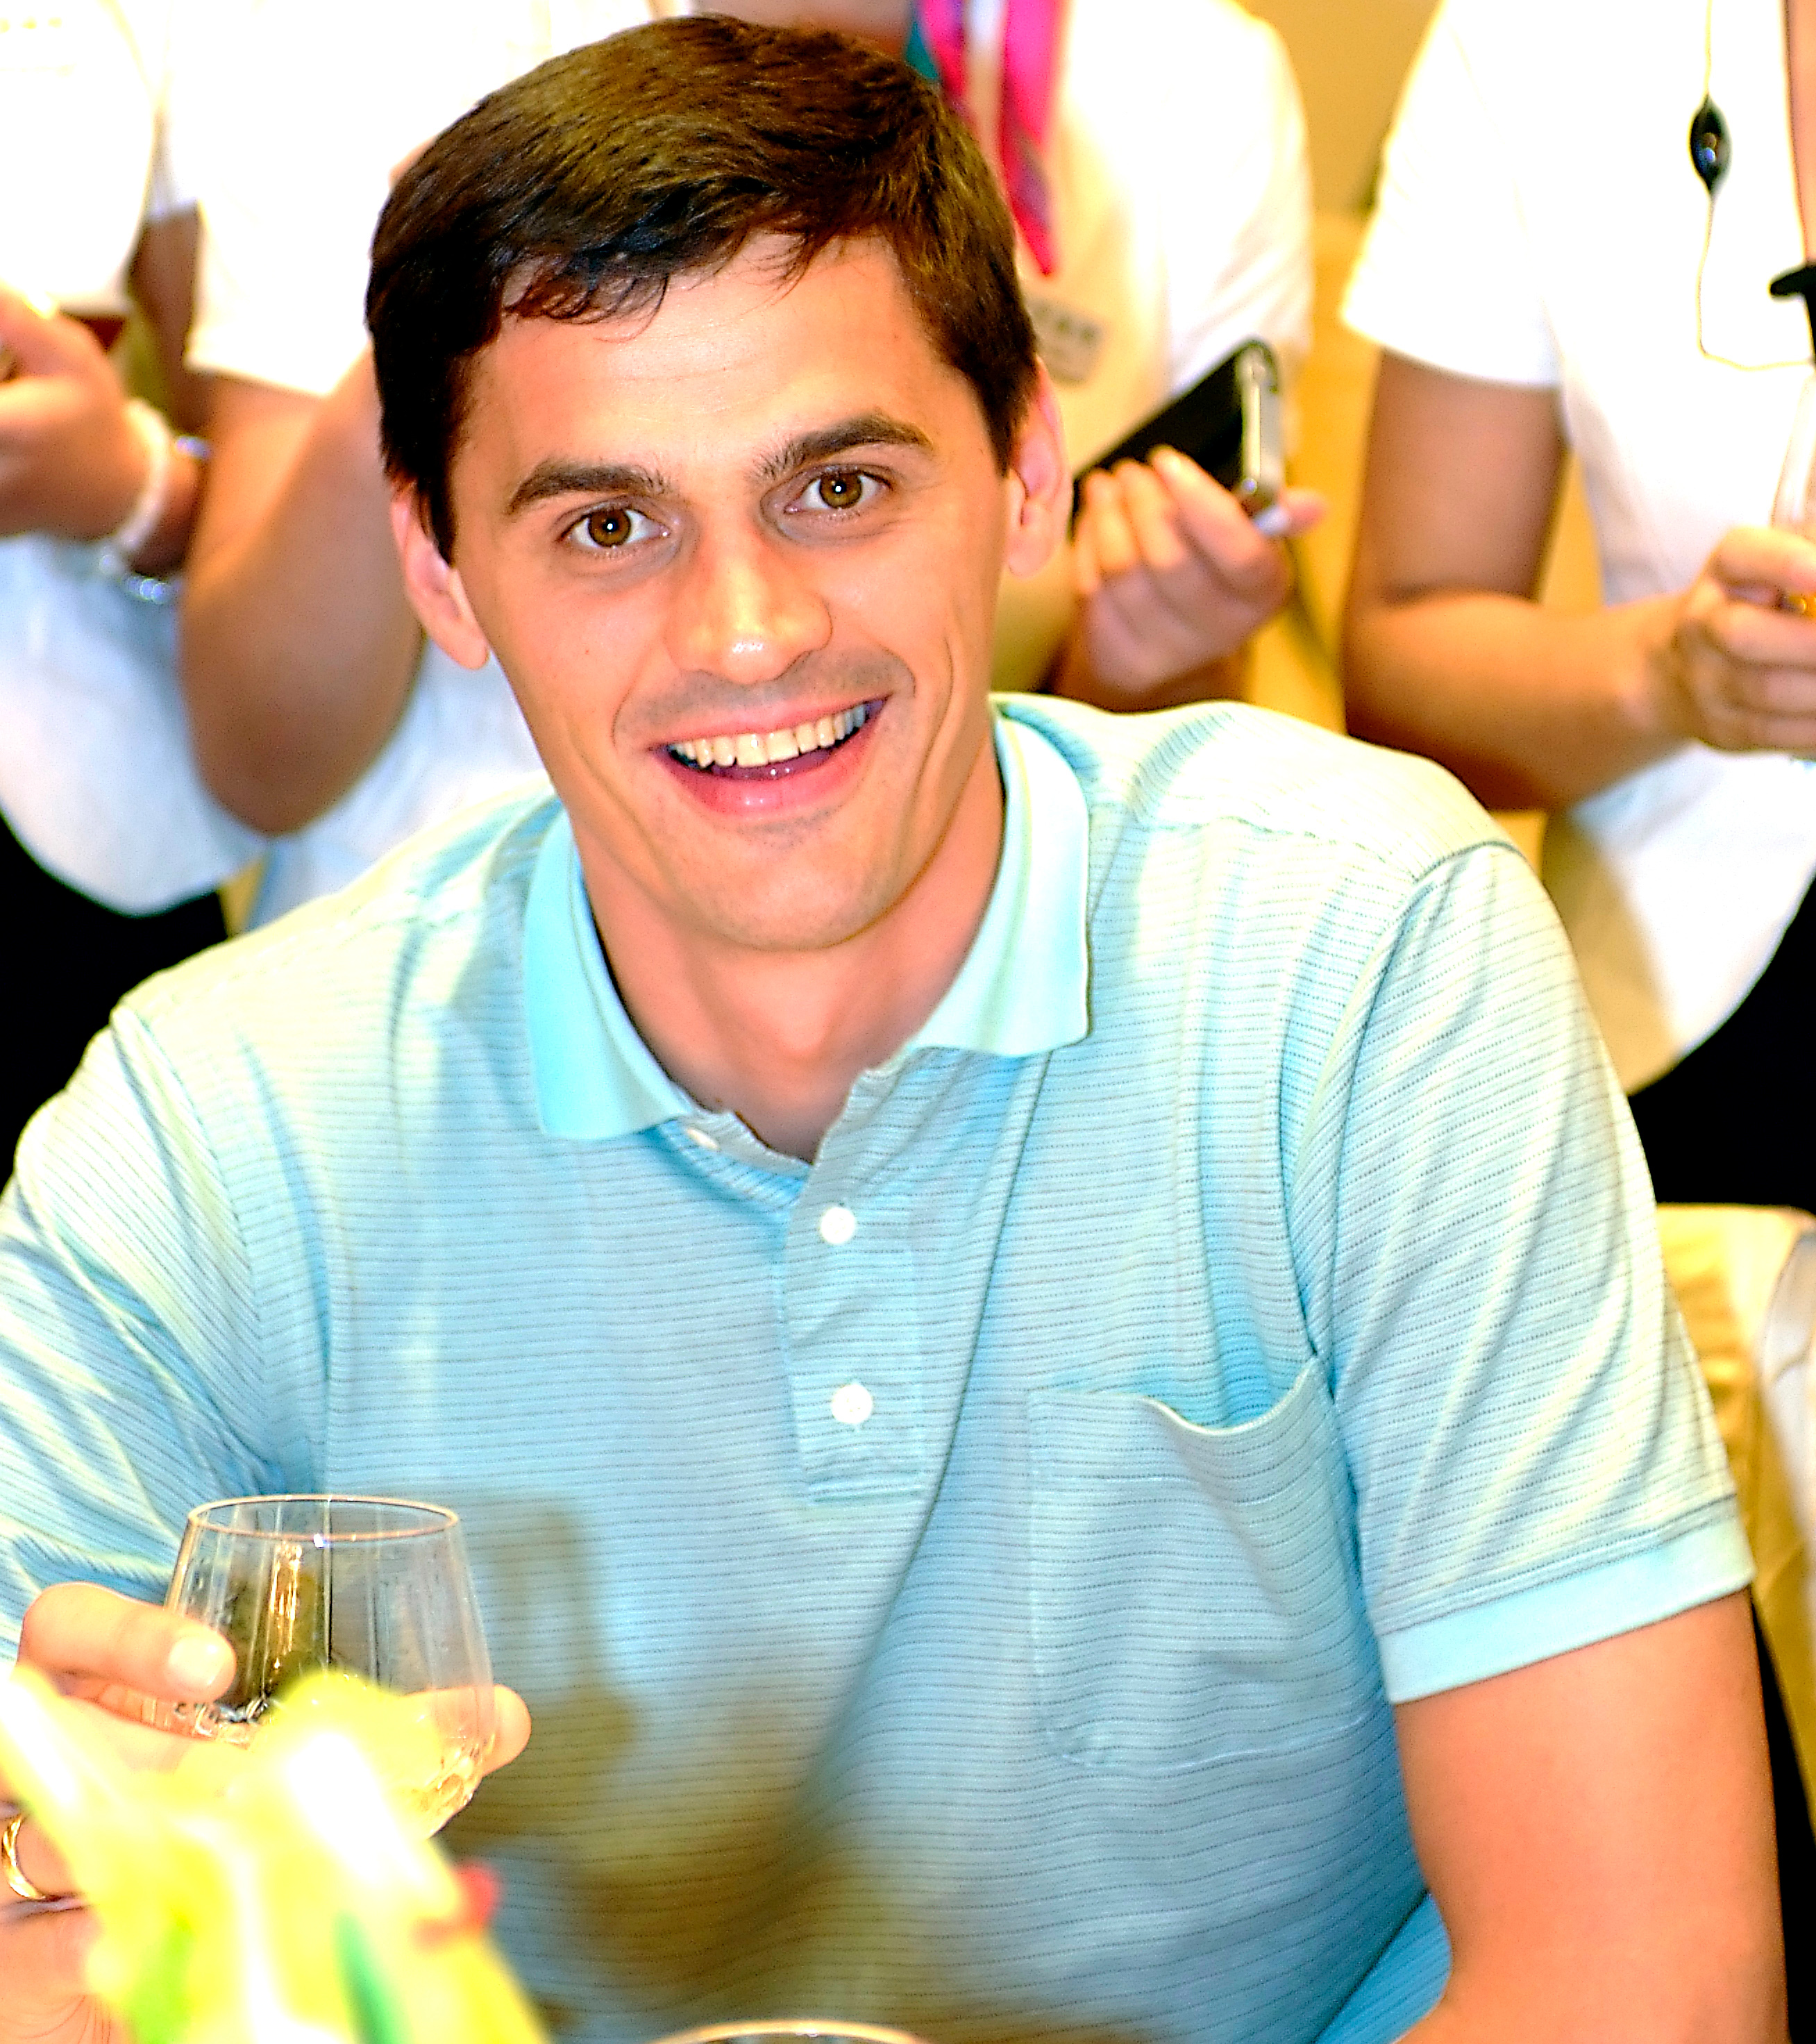 Swimmer Alexander Popov: photo, biography, personal life and sporting achievements 71